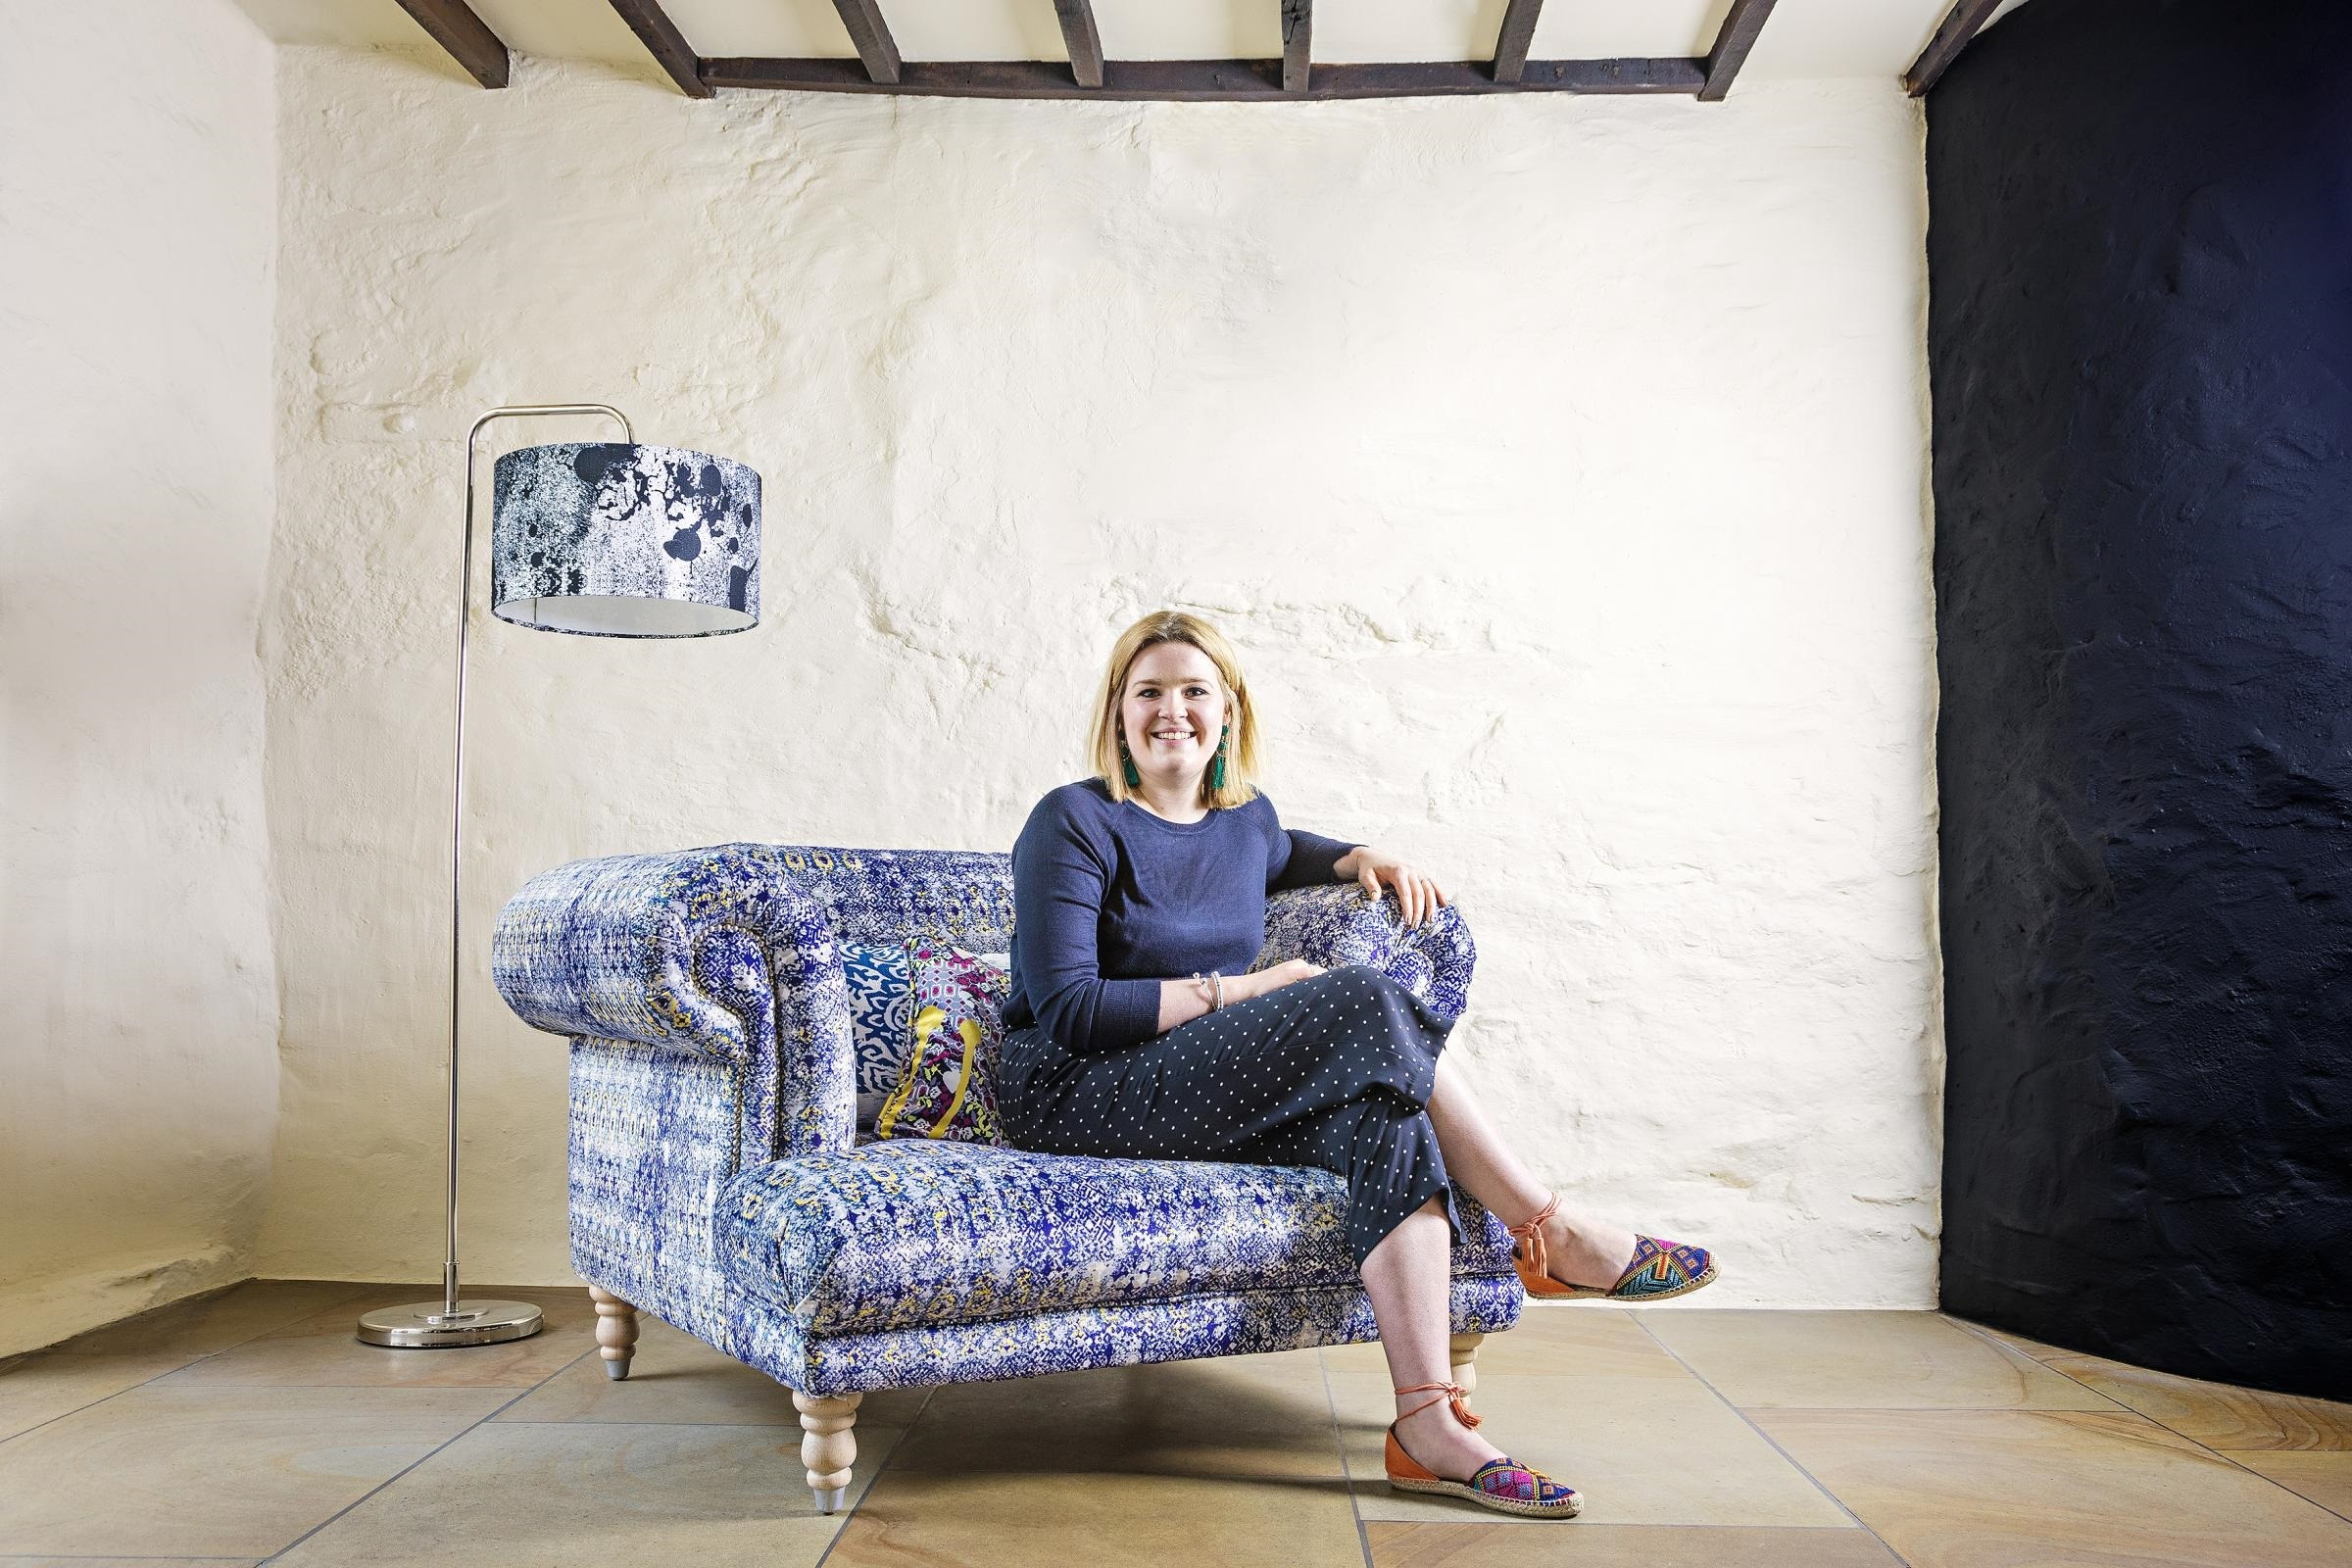 New Design And Upholstery Business Set Up By Windermere Woman The